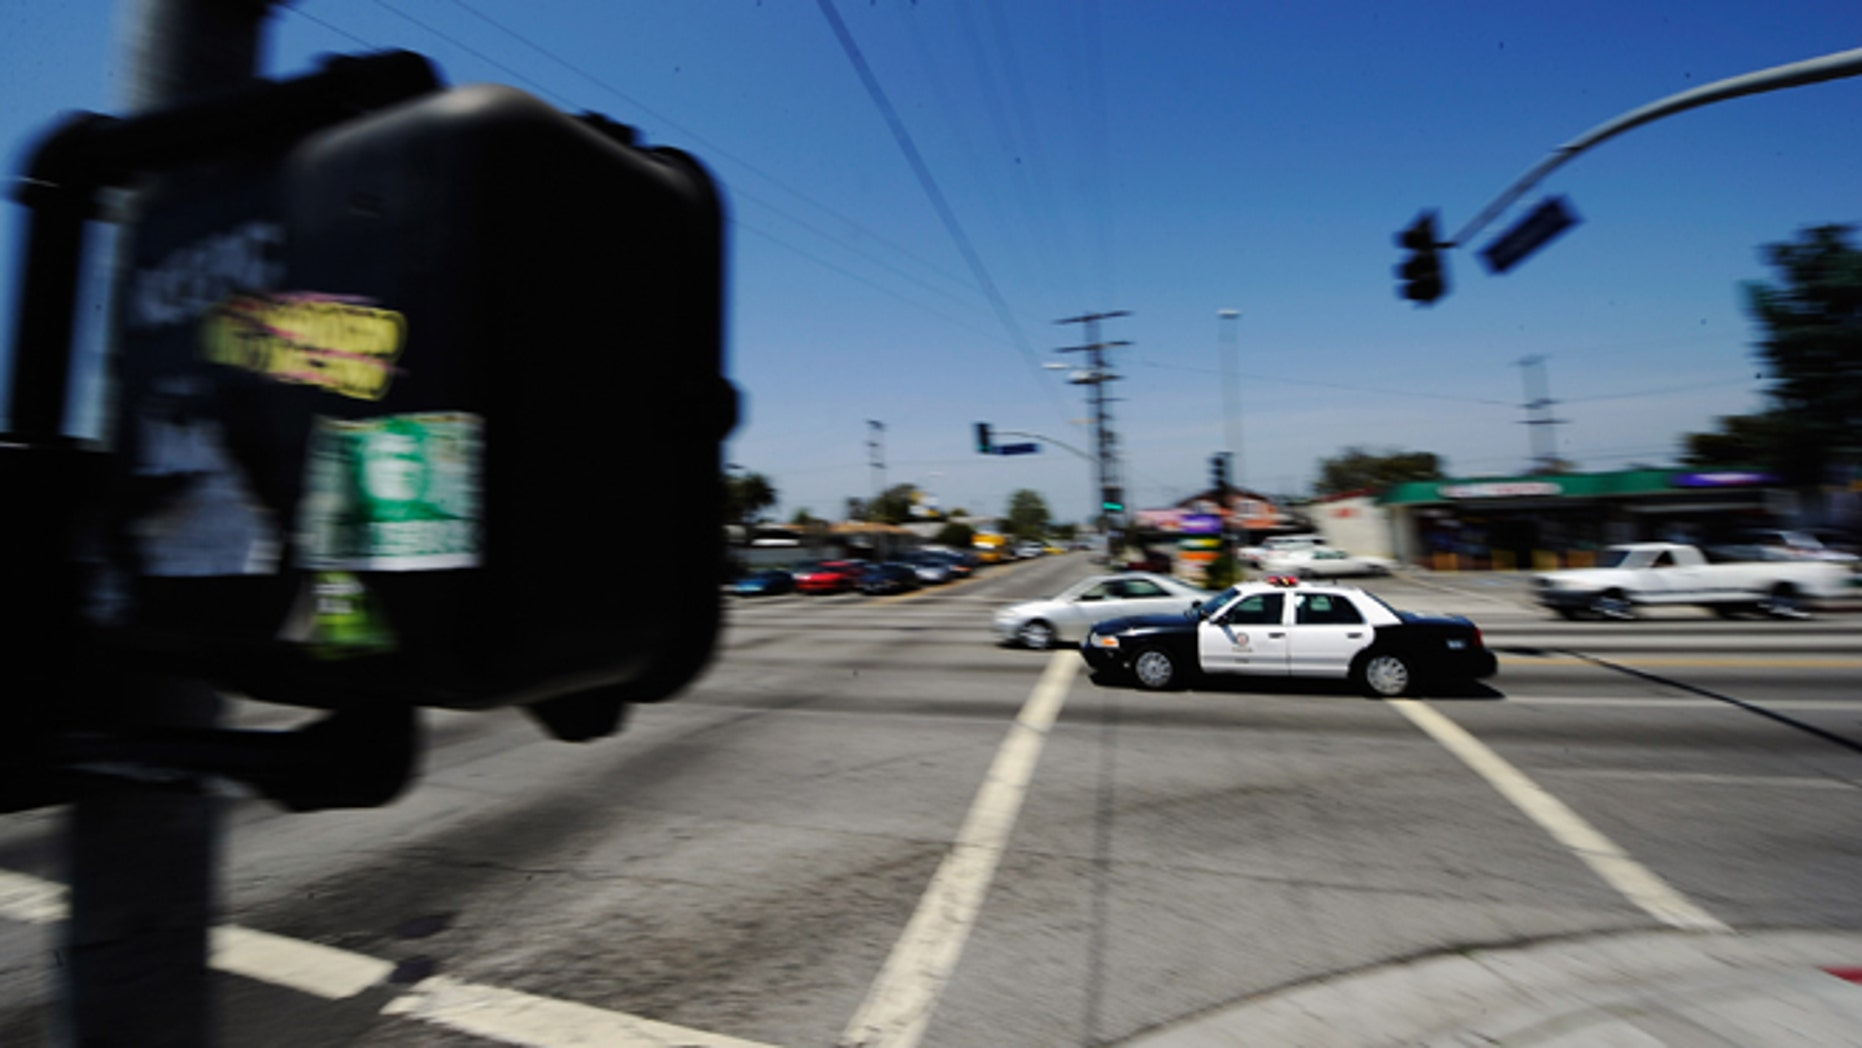 LOS ANGELES, CA - APRIL 27:  A Los Angeles Police Department car with lights and sirens going rushes through the intersection at Florence and Normandy Avenues in South Los Angeles on April 27, 2012 in Los Angeles, California. The intersection was the scene of the beating of truck driver Reginald Denny on April 29, 1992 during the early stages of the Los Angeles riots. It's been 20 years since the Rodney King verdict that sparked the riots.  (Photo by Kevork Djansezian/Getty Images)